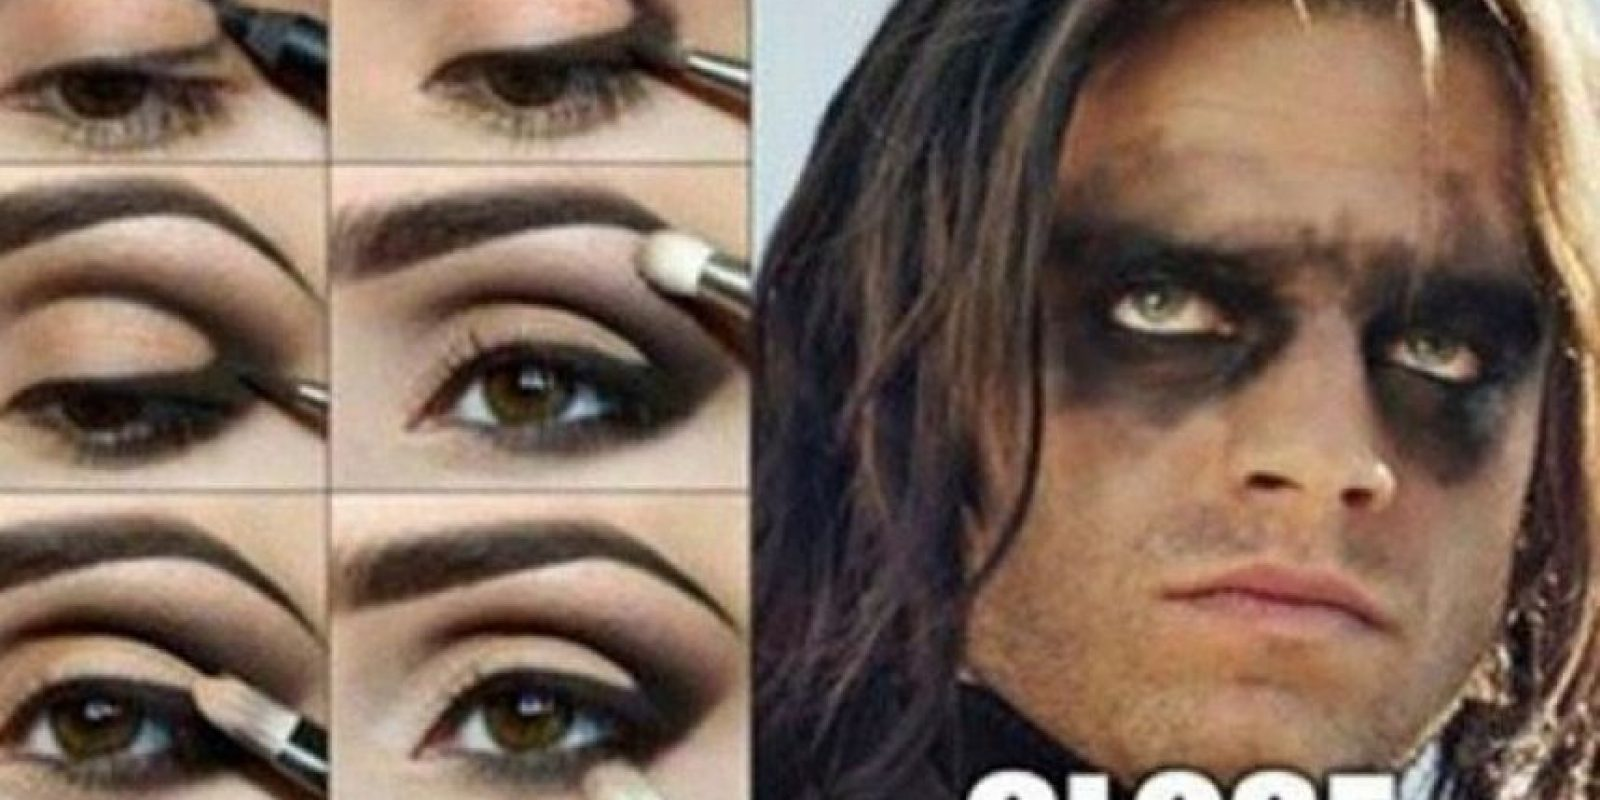 16. Muchas se identifican Foto: Tumblr/Tagged/Fail/Eyeliner